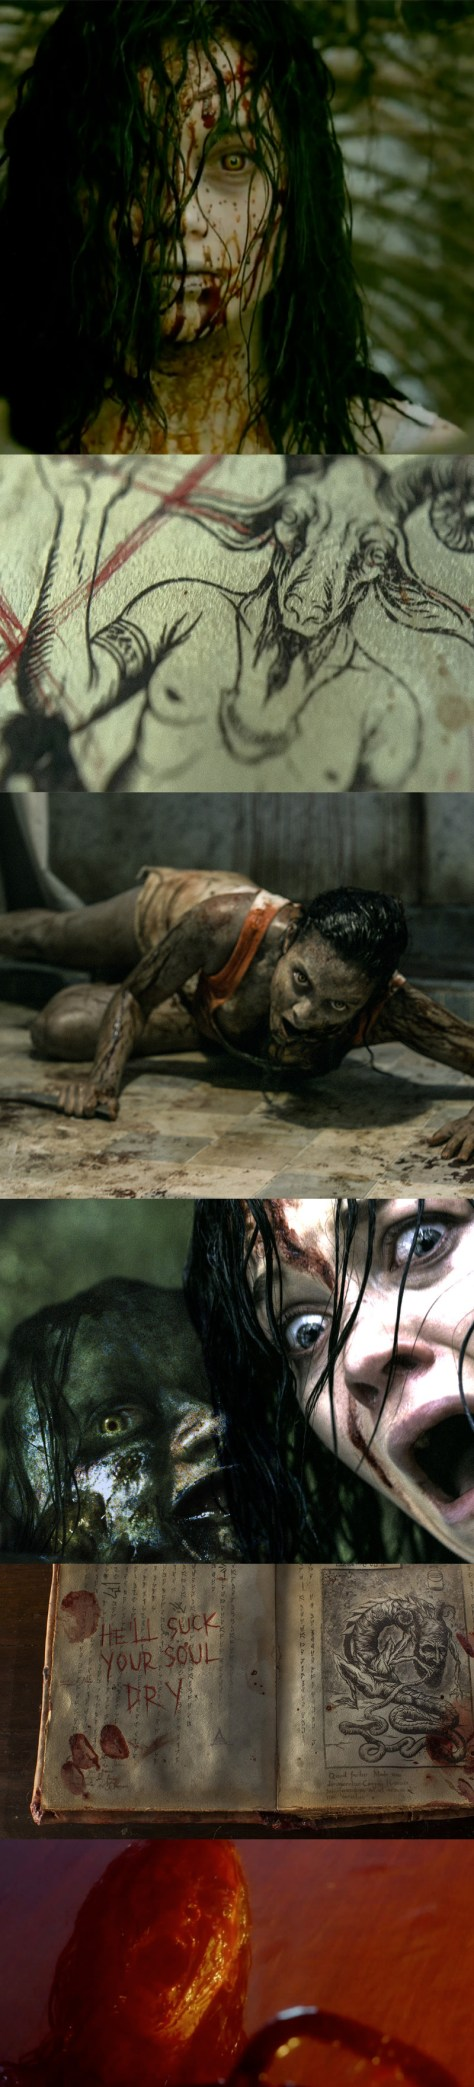 20130428-the-evil-dead-2013-03